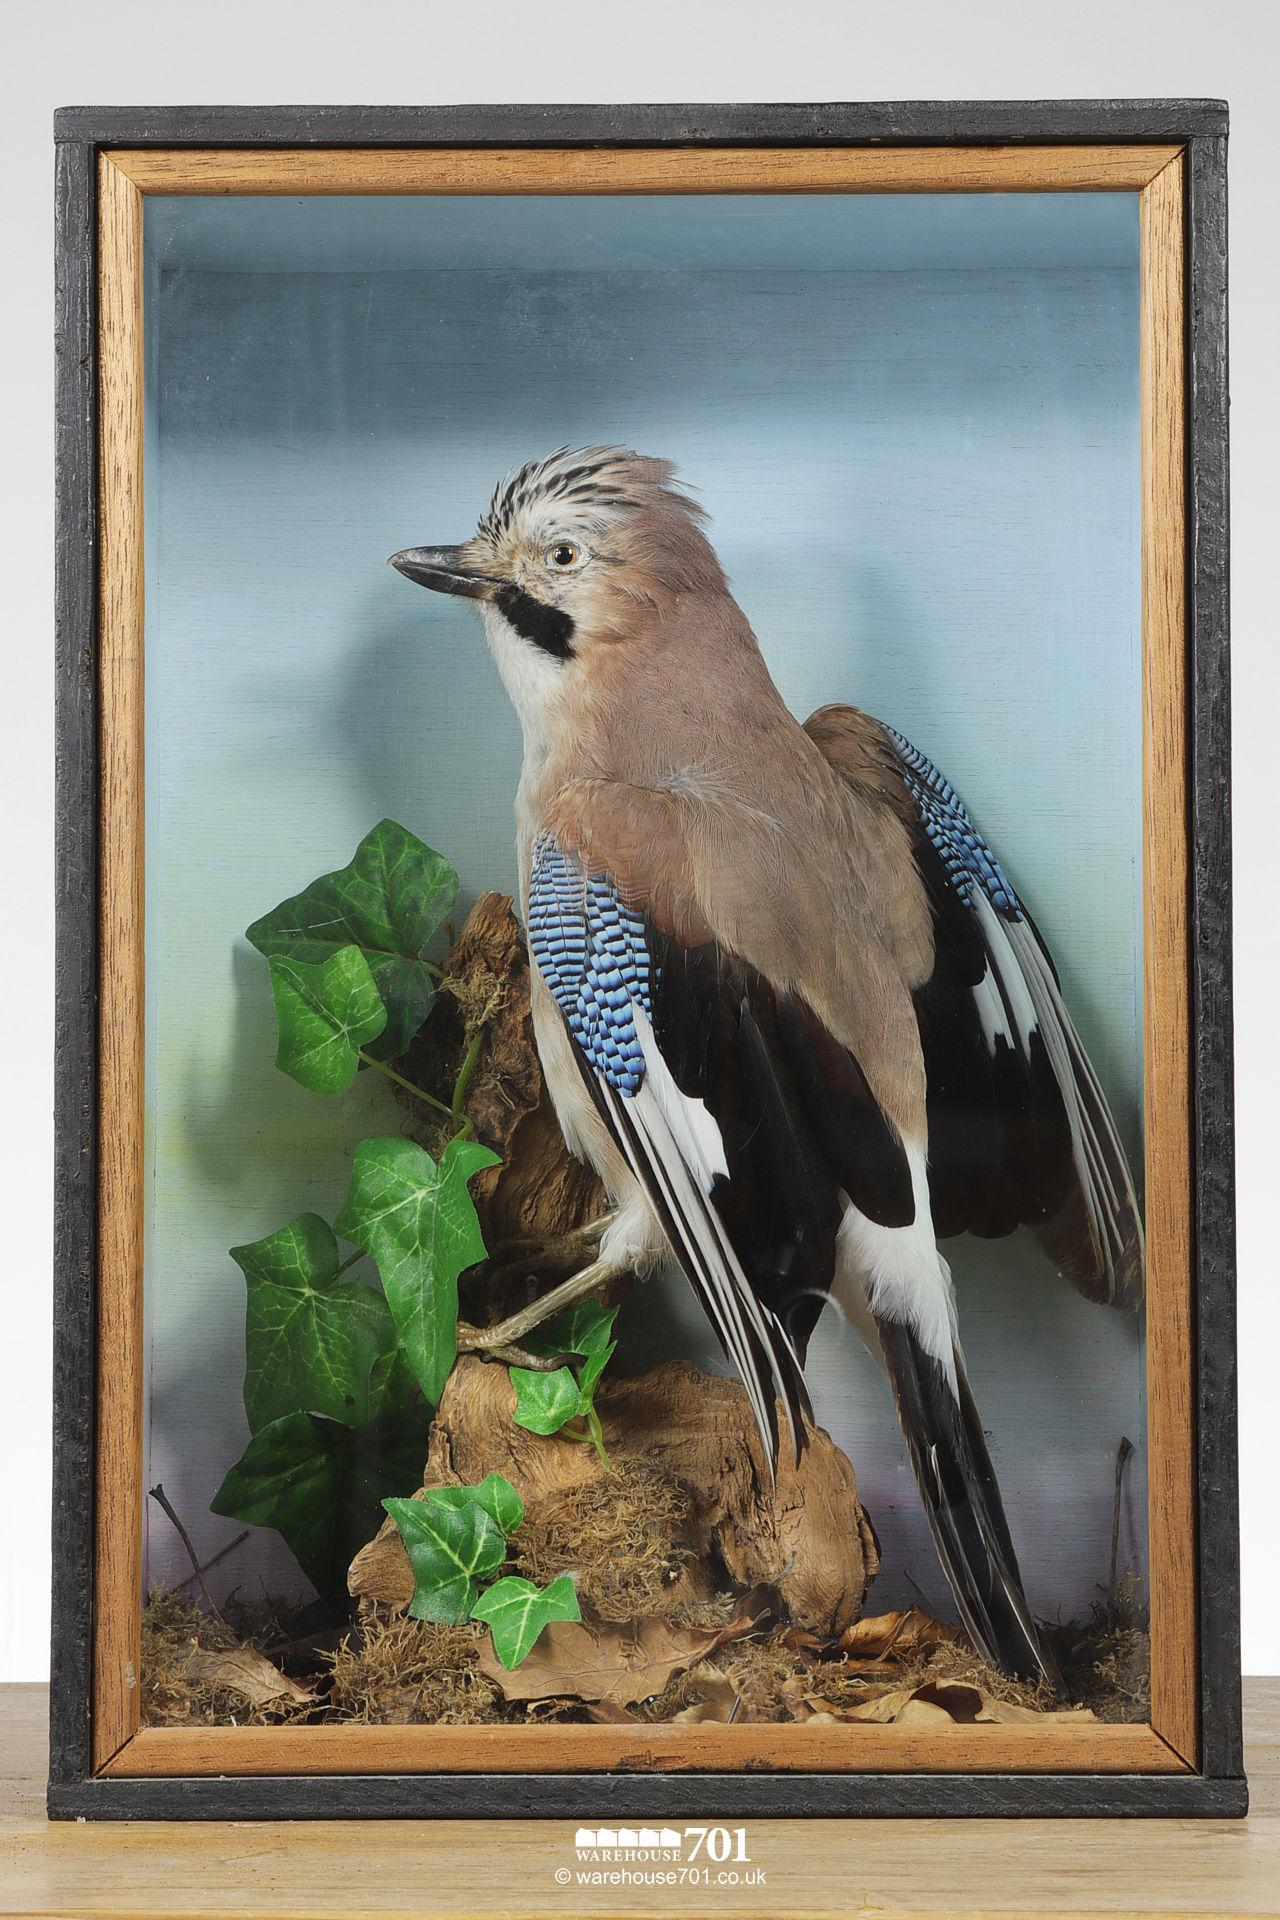 Taxidermy Stuffed Jay Bird in a Glazed Case